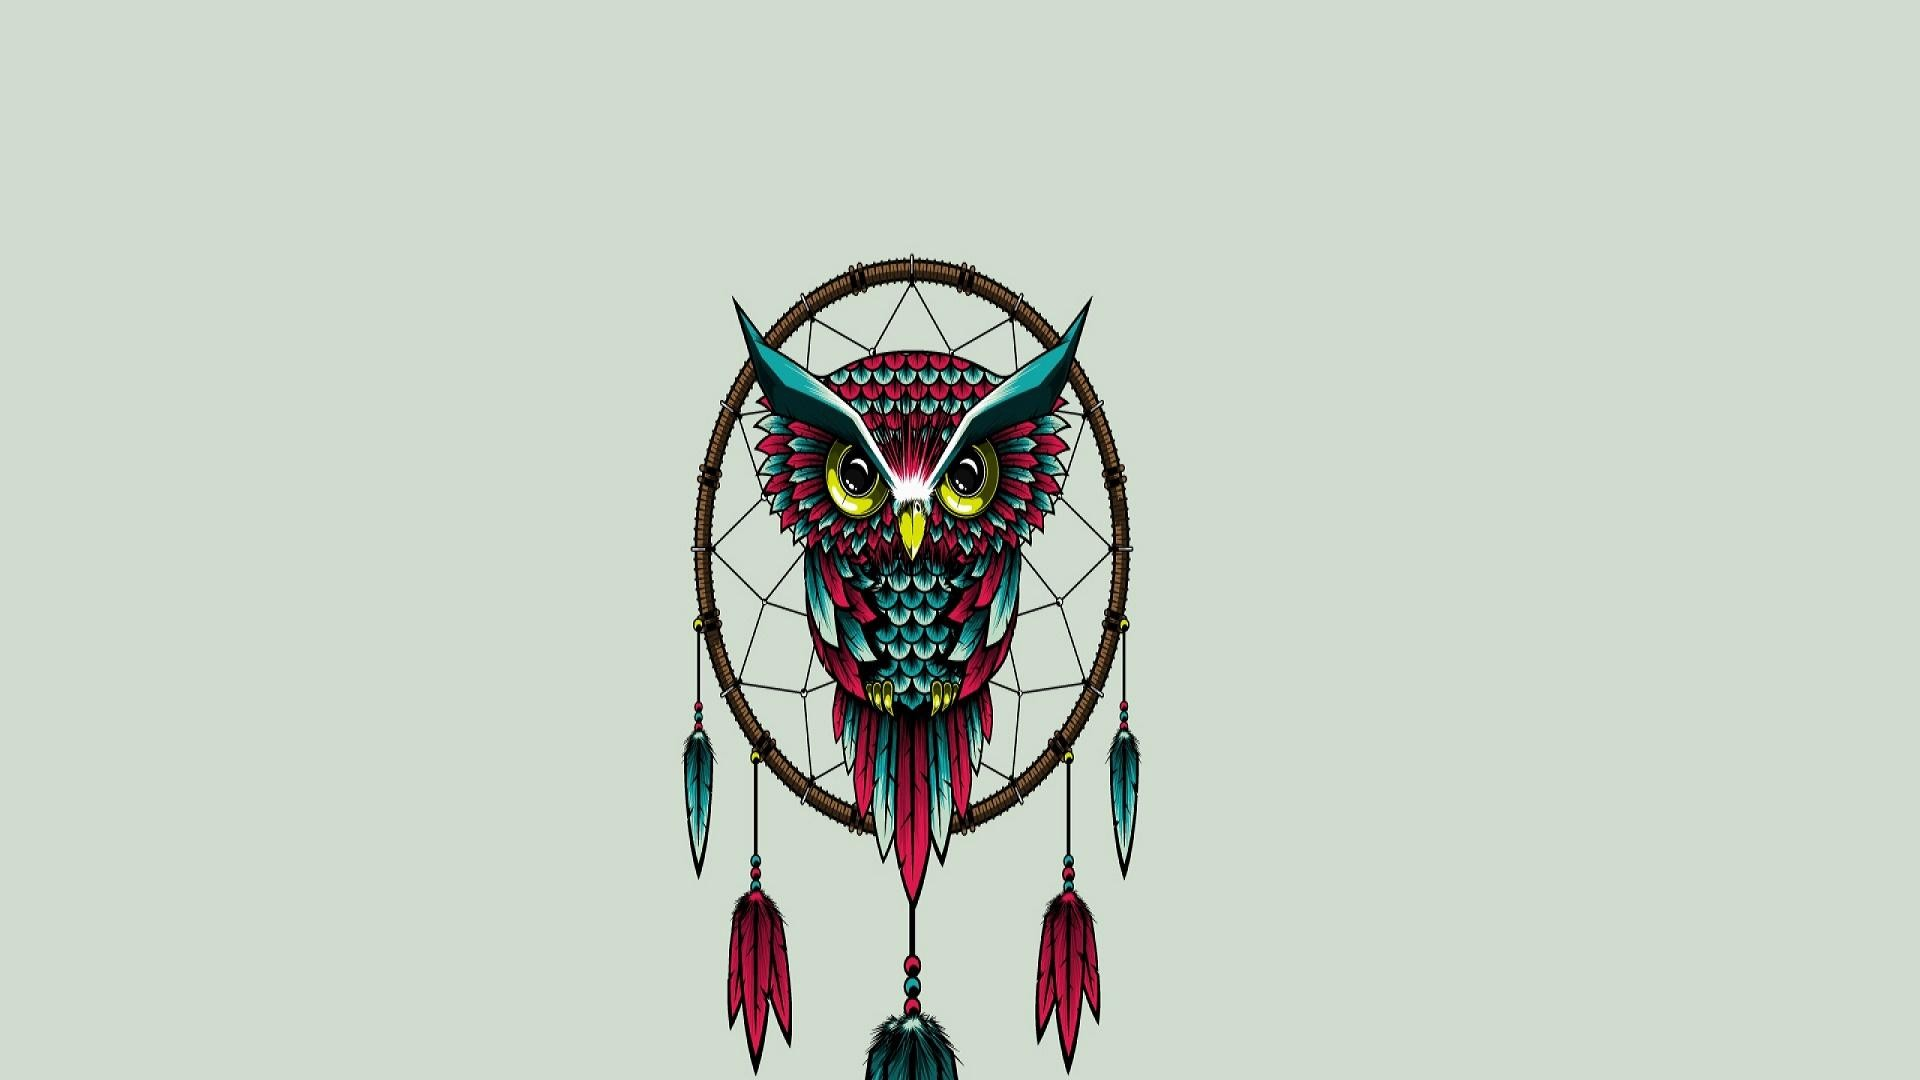 dream catcher A dreamcatcher consists of a round wooden hoop woven with a web of yarn leading to a dangling of a nightmare will get caught in the web of the dream catcher figuratively stopping the flow of bad.